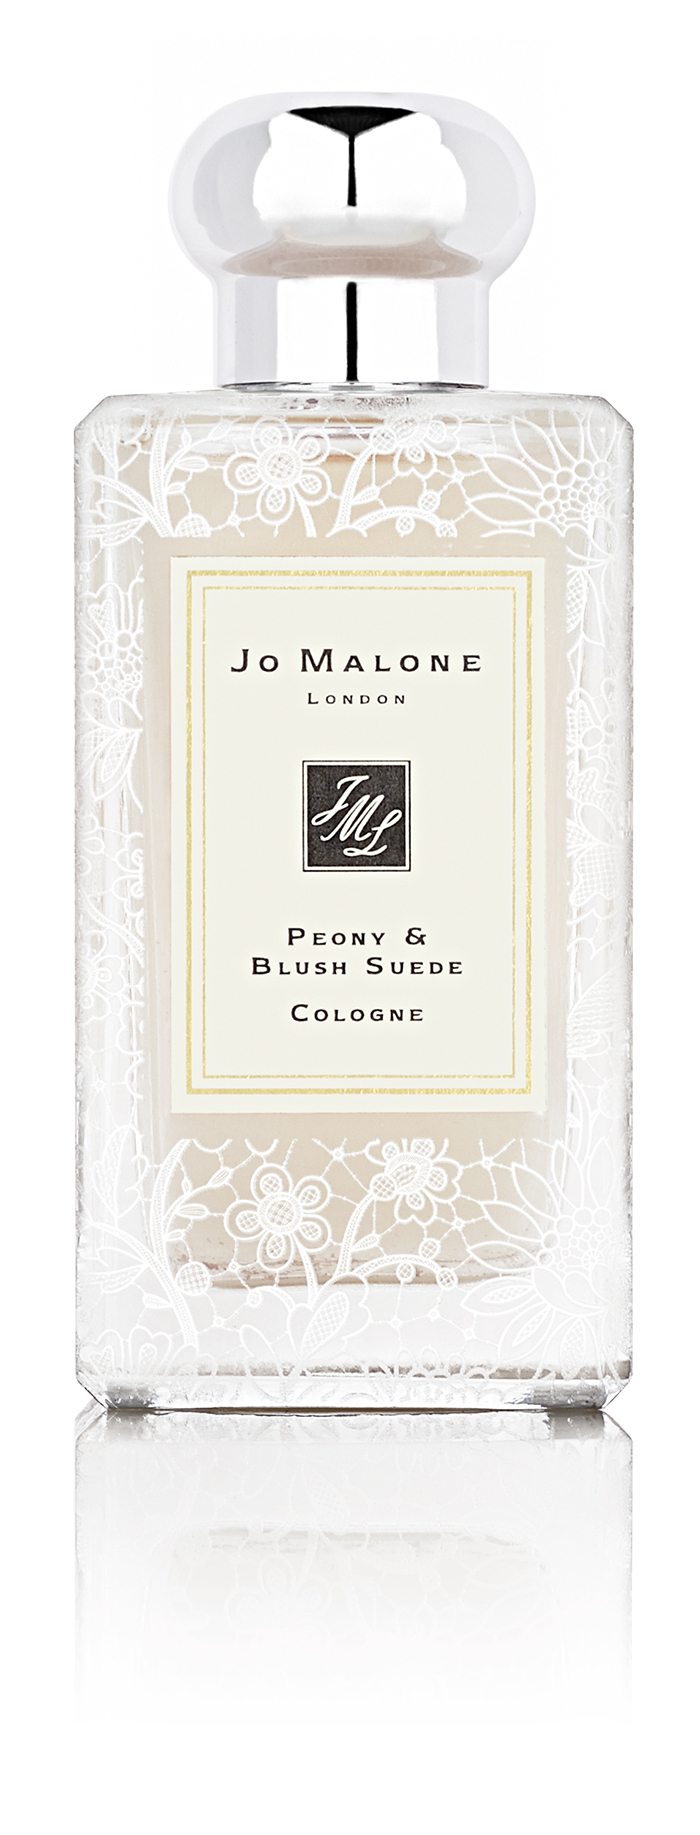 WEDDING PARTY GIFTS JO MALONE PEONY BLUSH SUEDE LACE BOTTLE